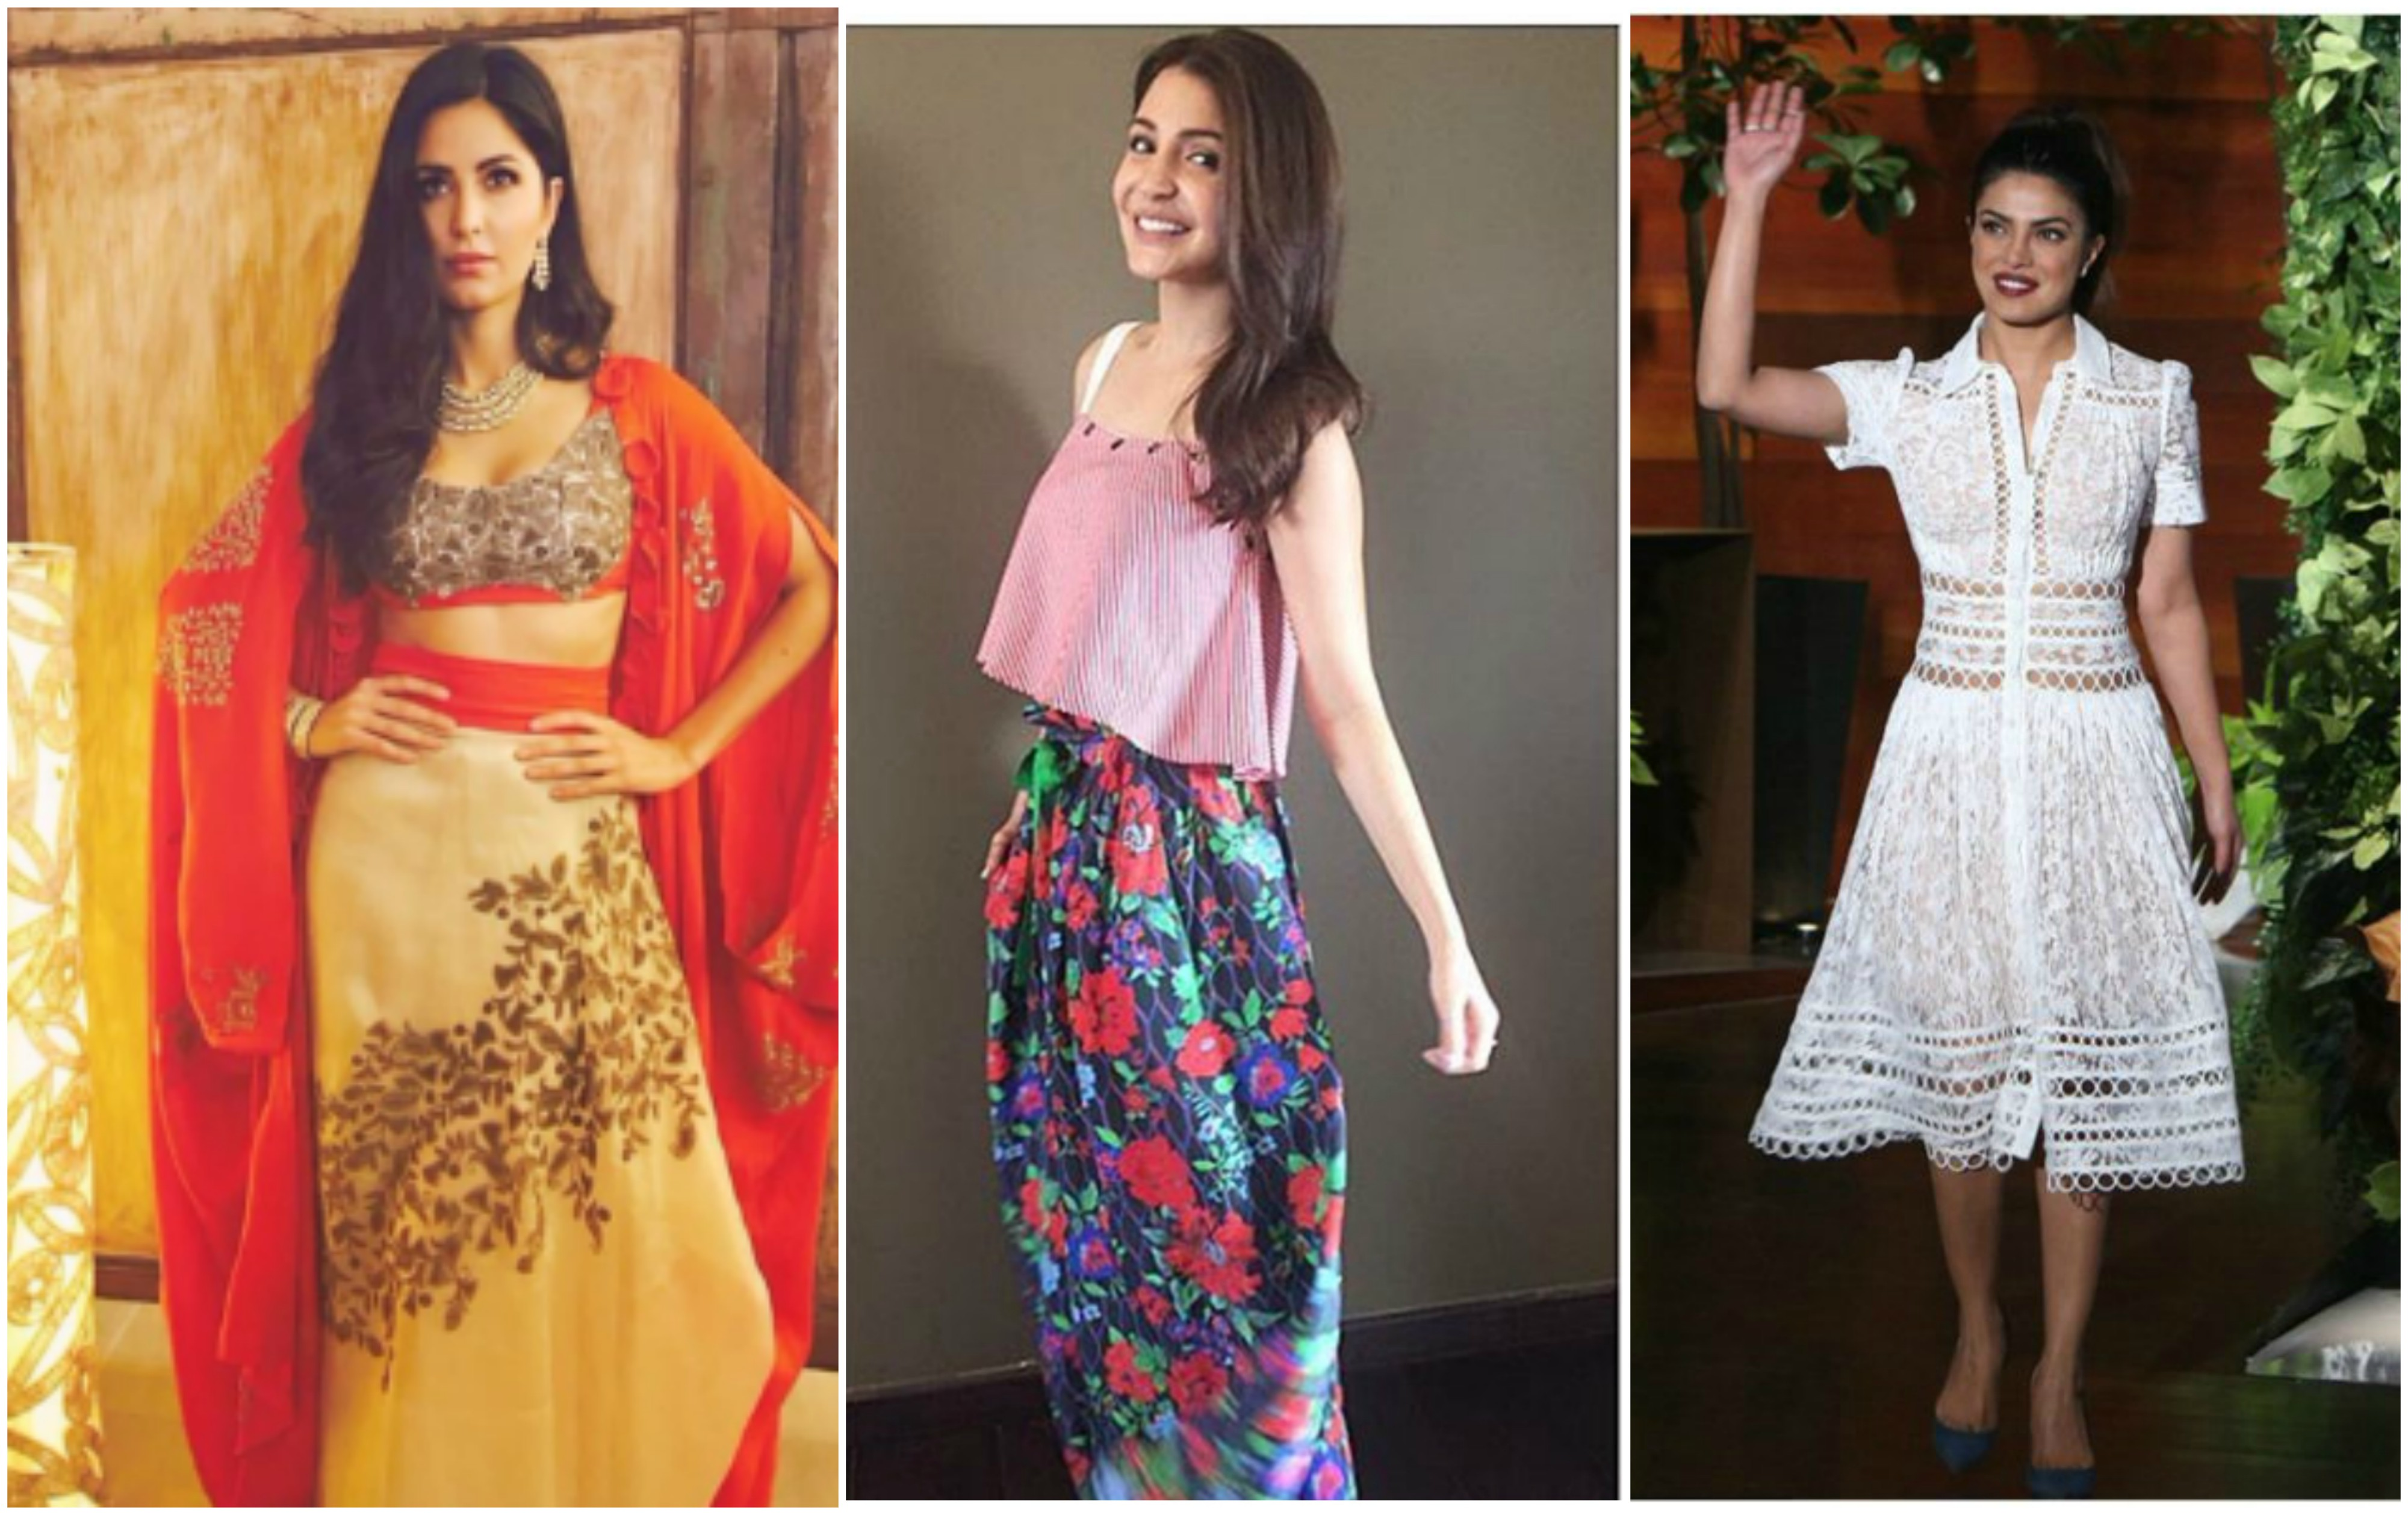 Best Dressed Celebs This Week: B-Town actresses continue setting trends